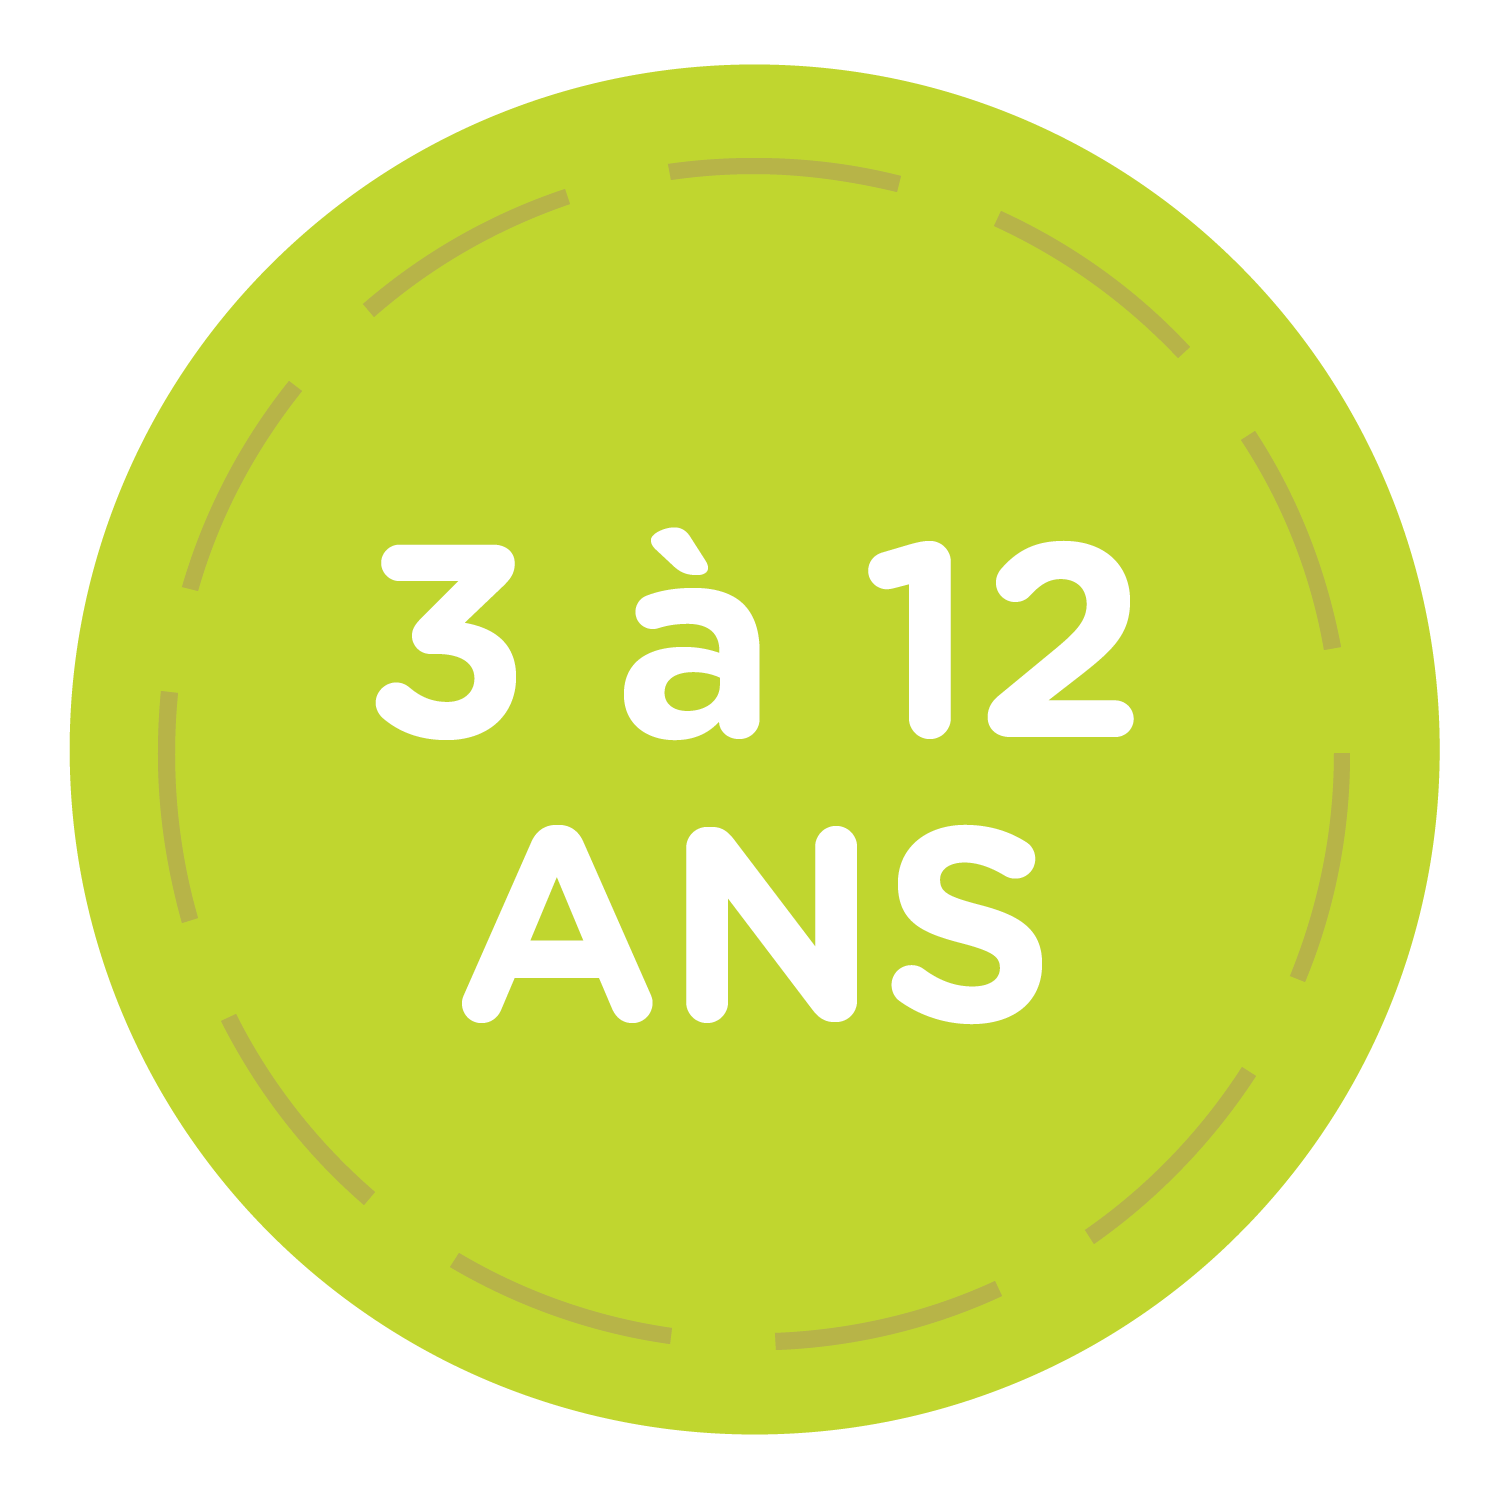 Age-Group-Circles-With-Text_Camps_3-12yrs_French